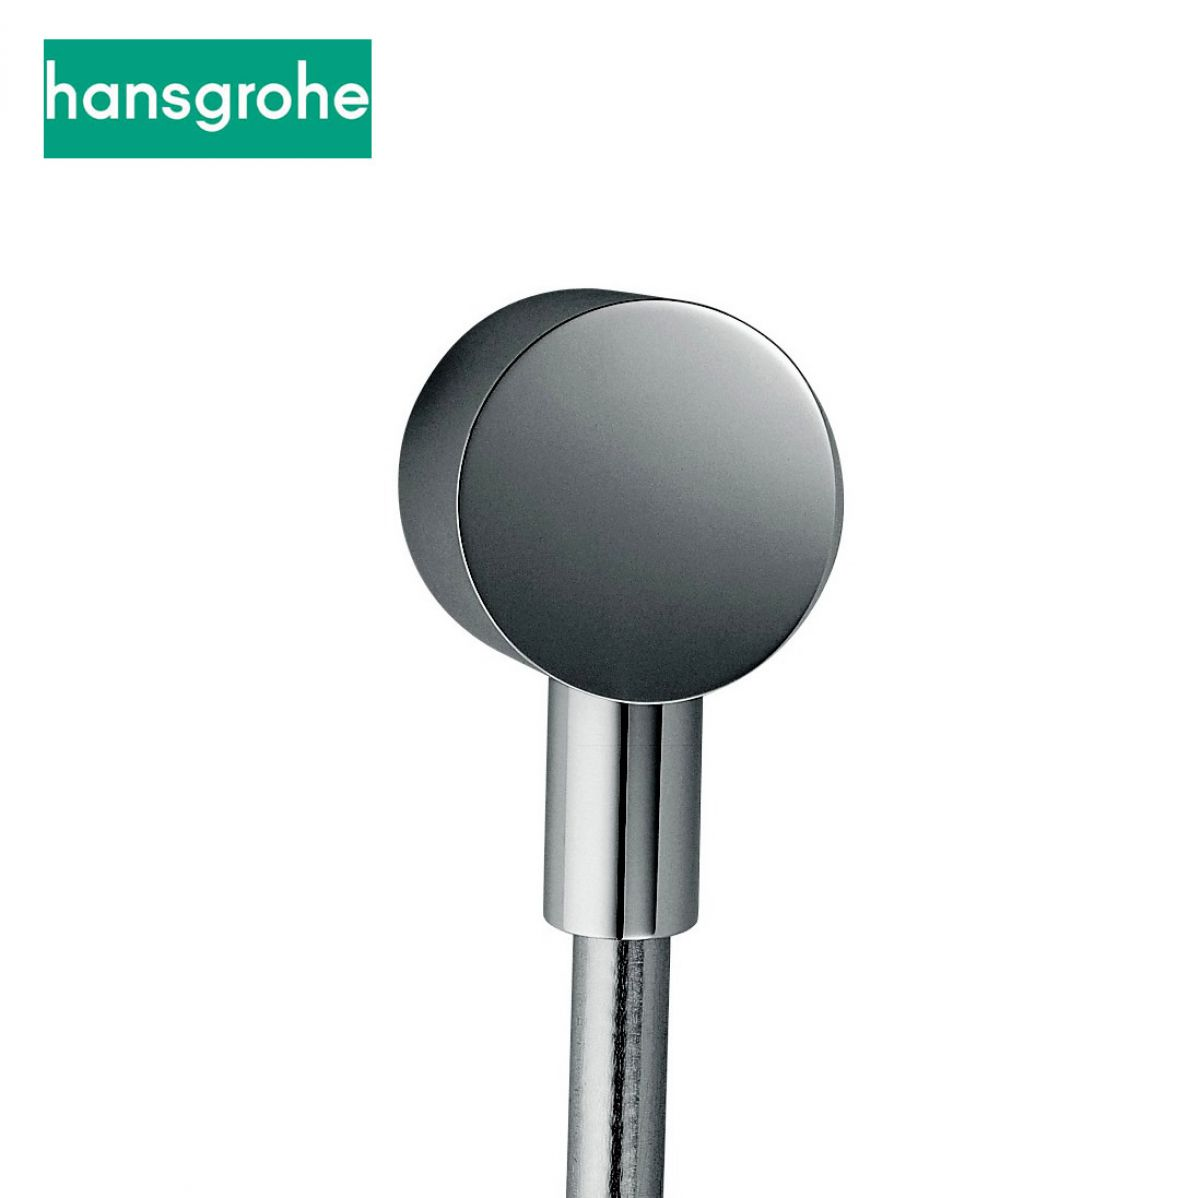 Hansgrohe FixFit S Wall Outlet with non-return valve